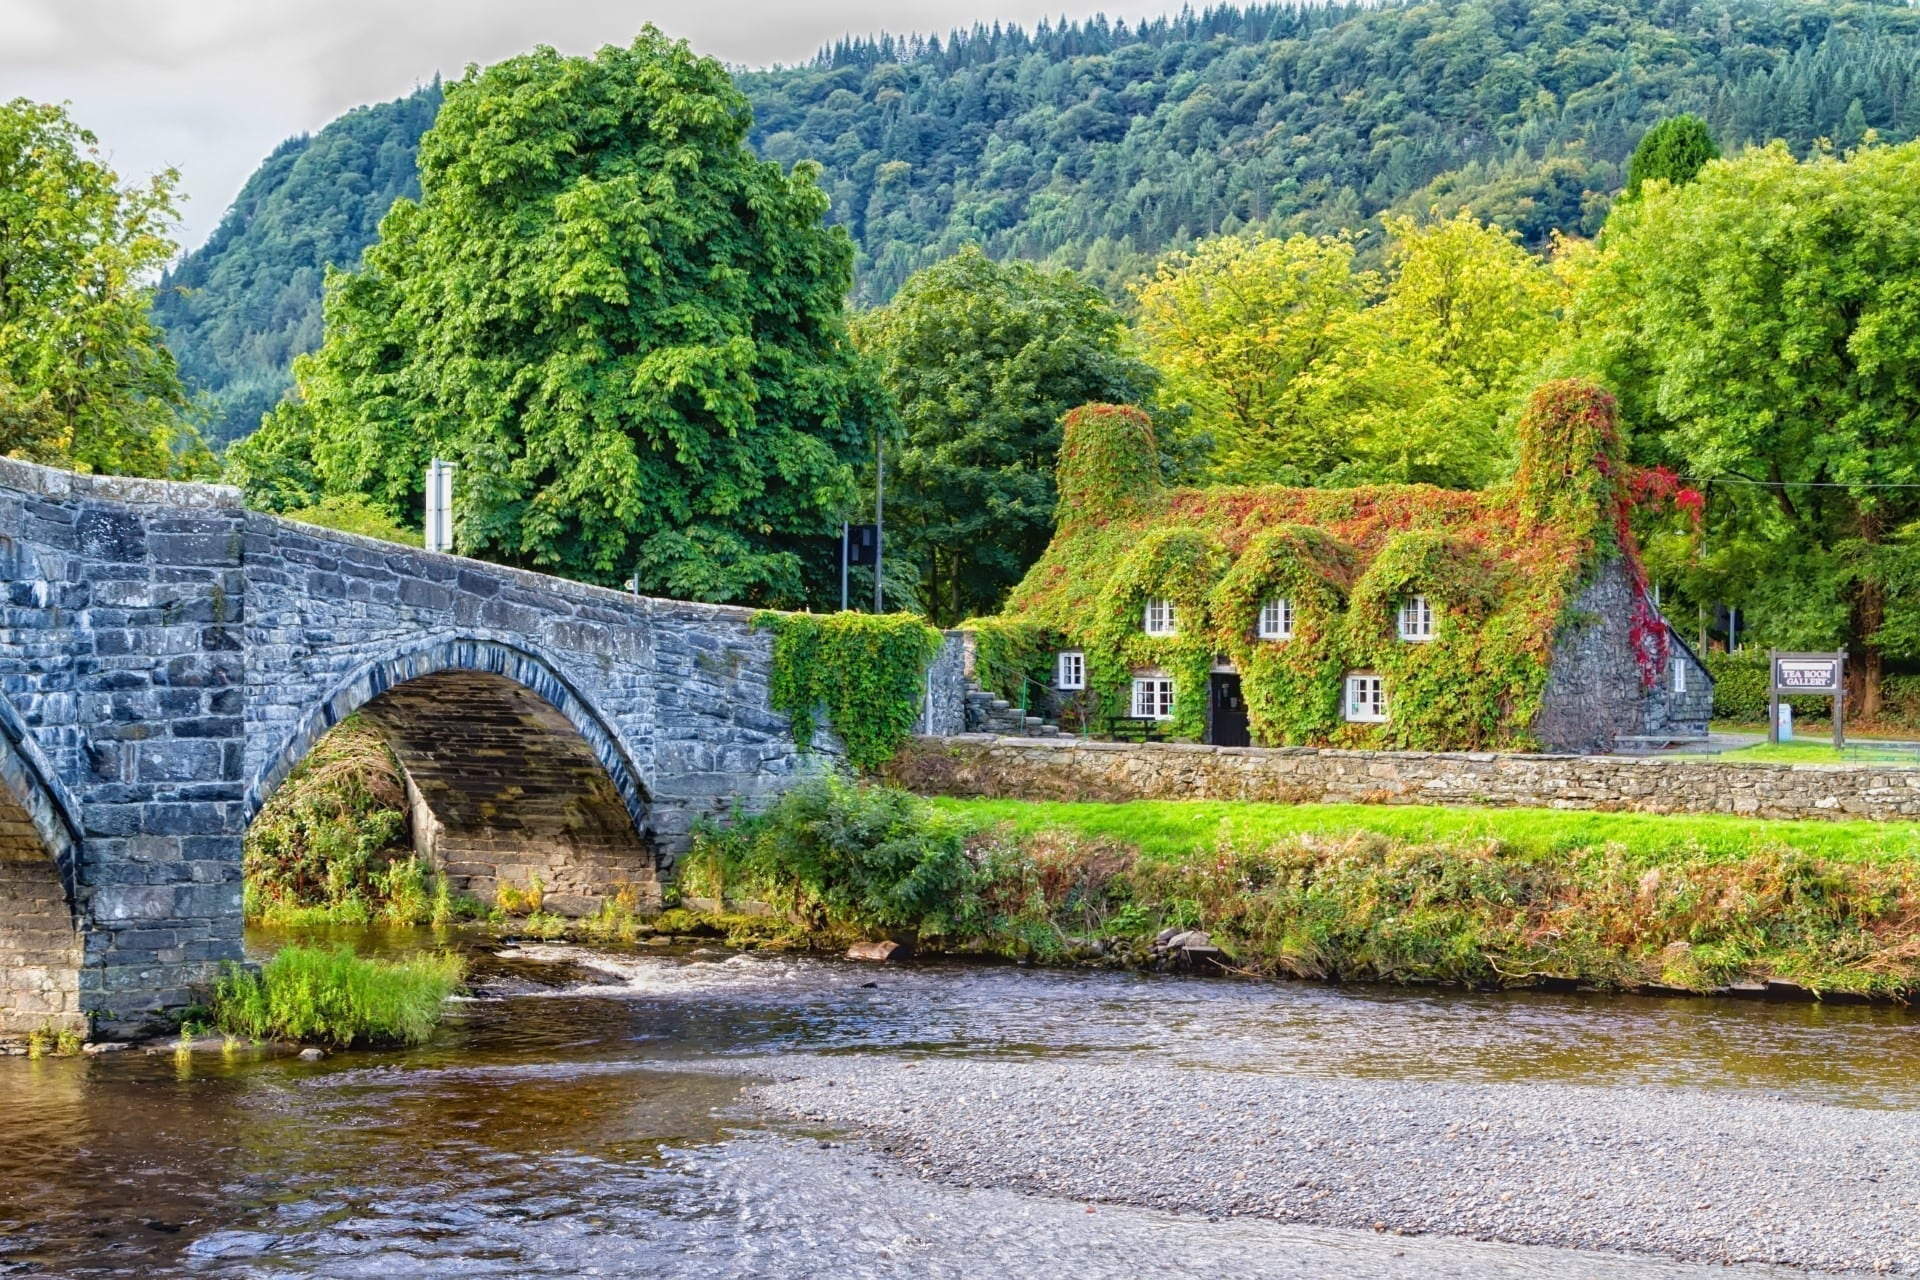 Pont Fawr, famous medieval stone bridge across the river Conwy